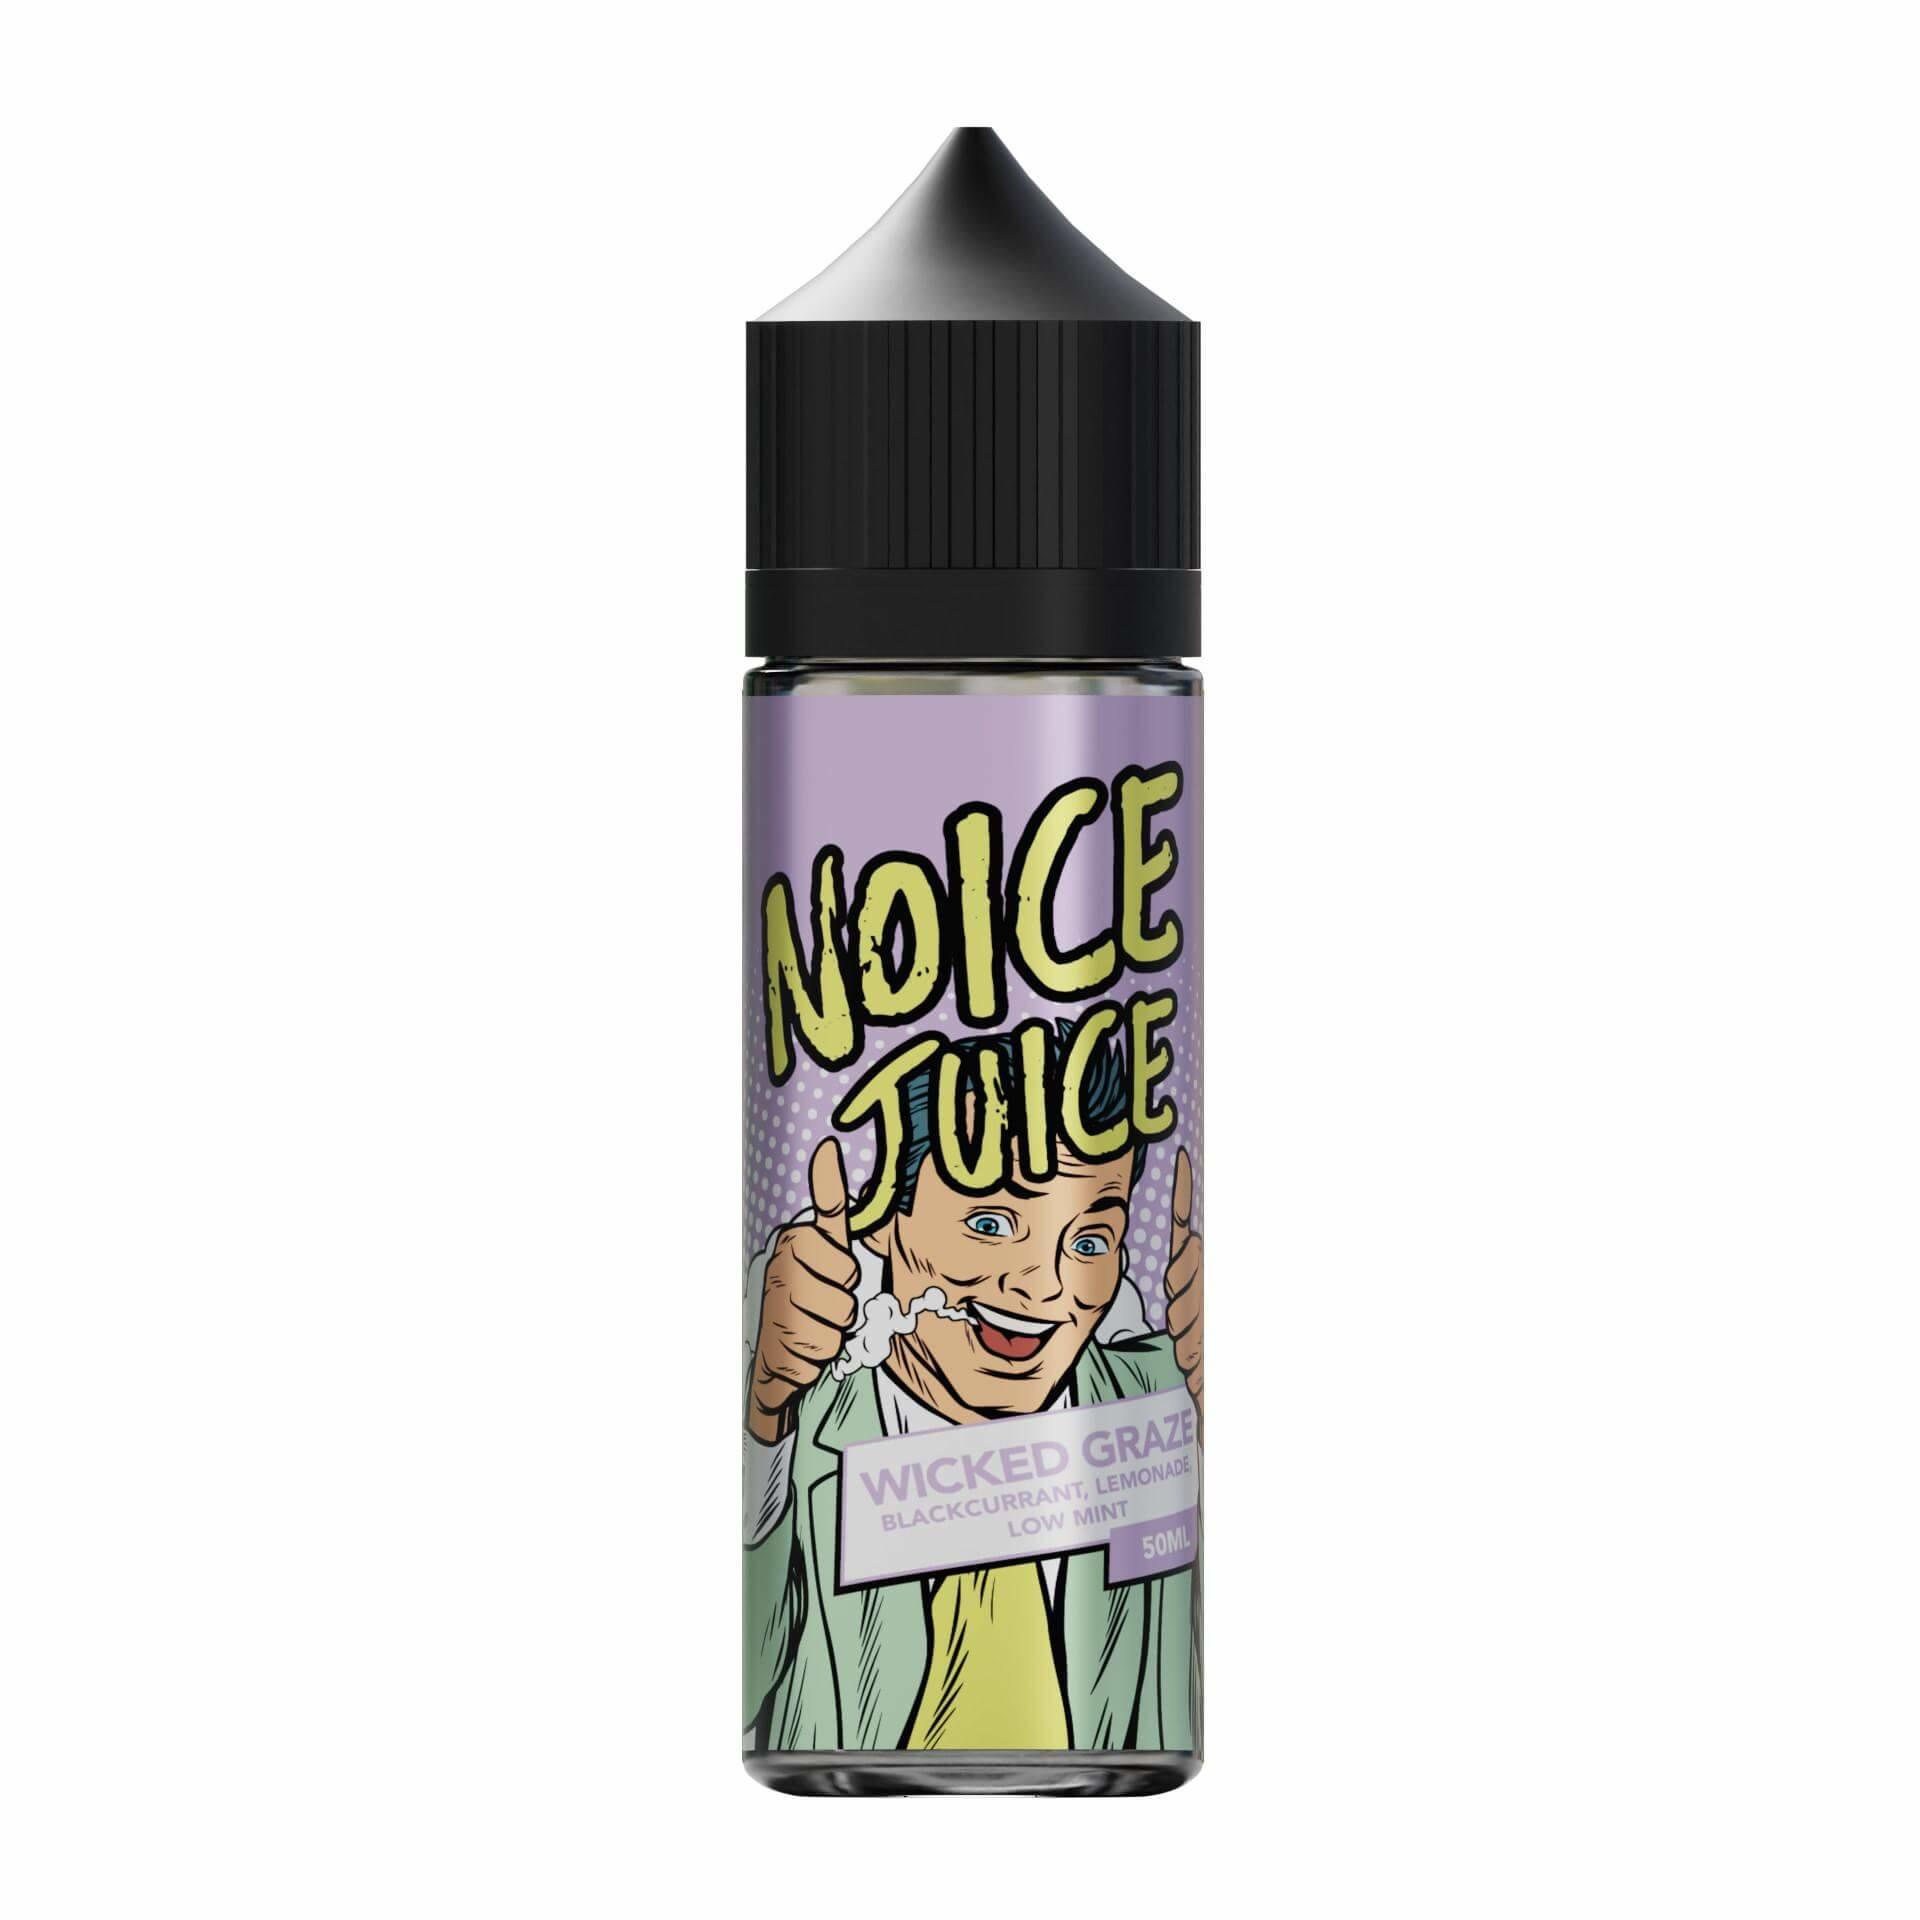 Wicked Graze Noice Range 0mg Short Fill E Liquid